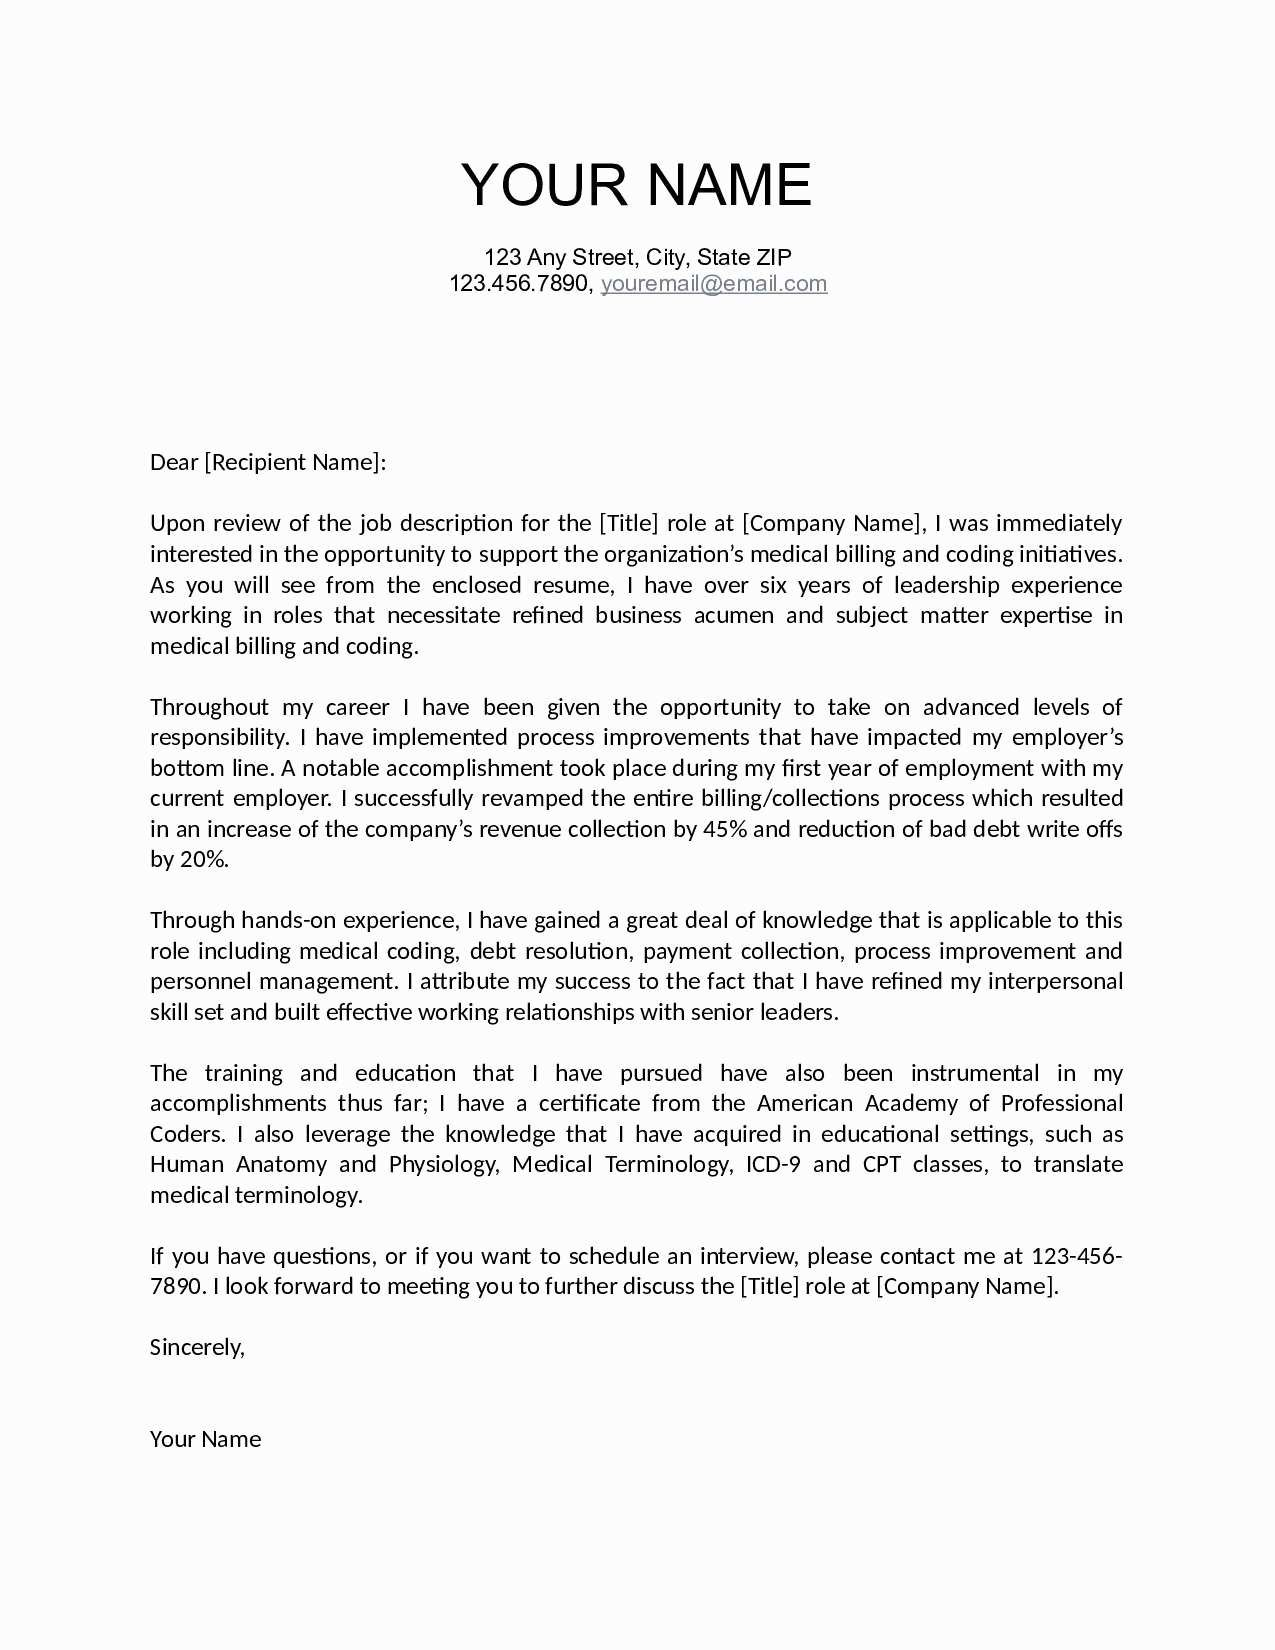 recruitment letter template Collection-How to Write A Cover Letter for Recruitment Agency Best Job Fer Letter Template Us 16-m